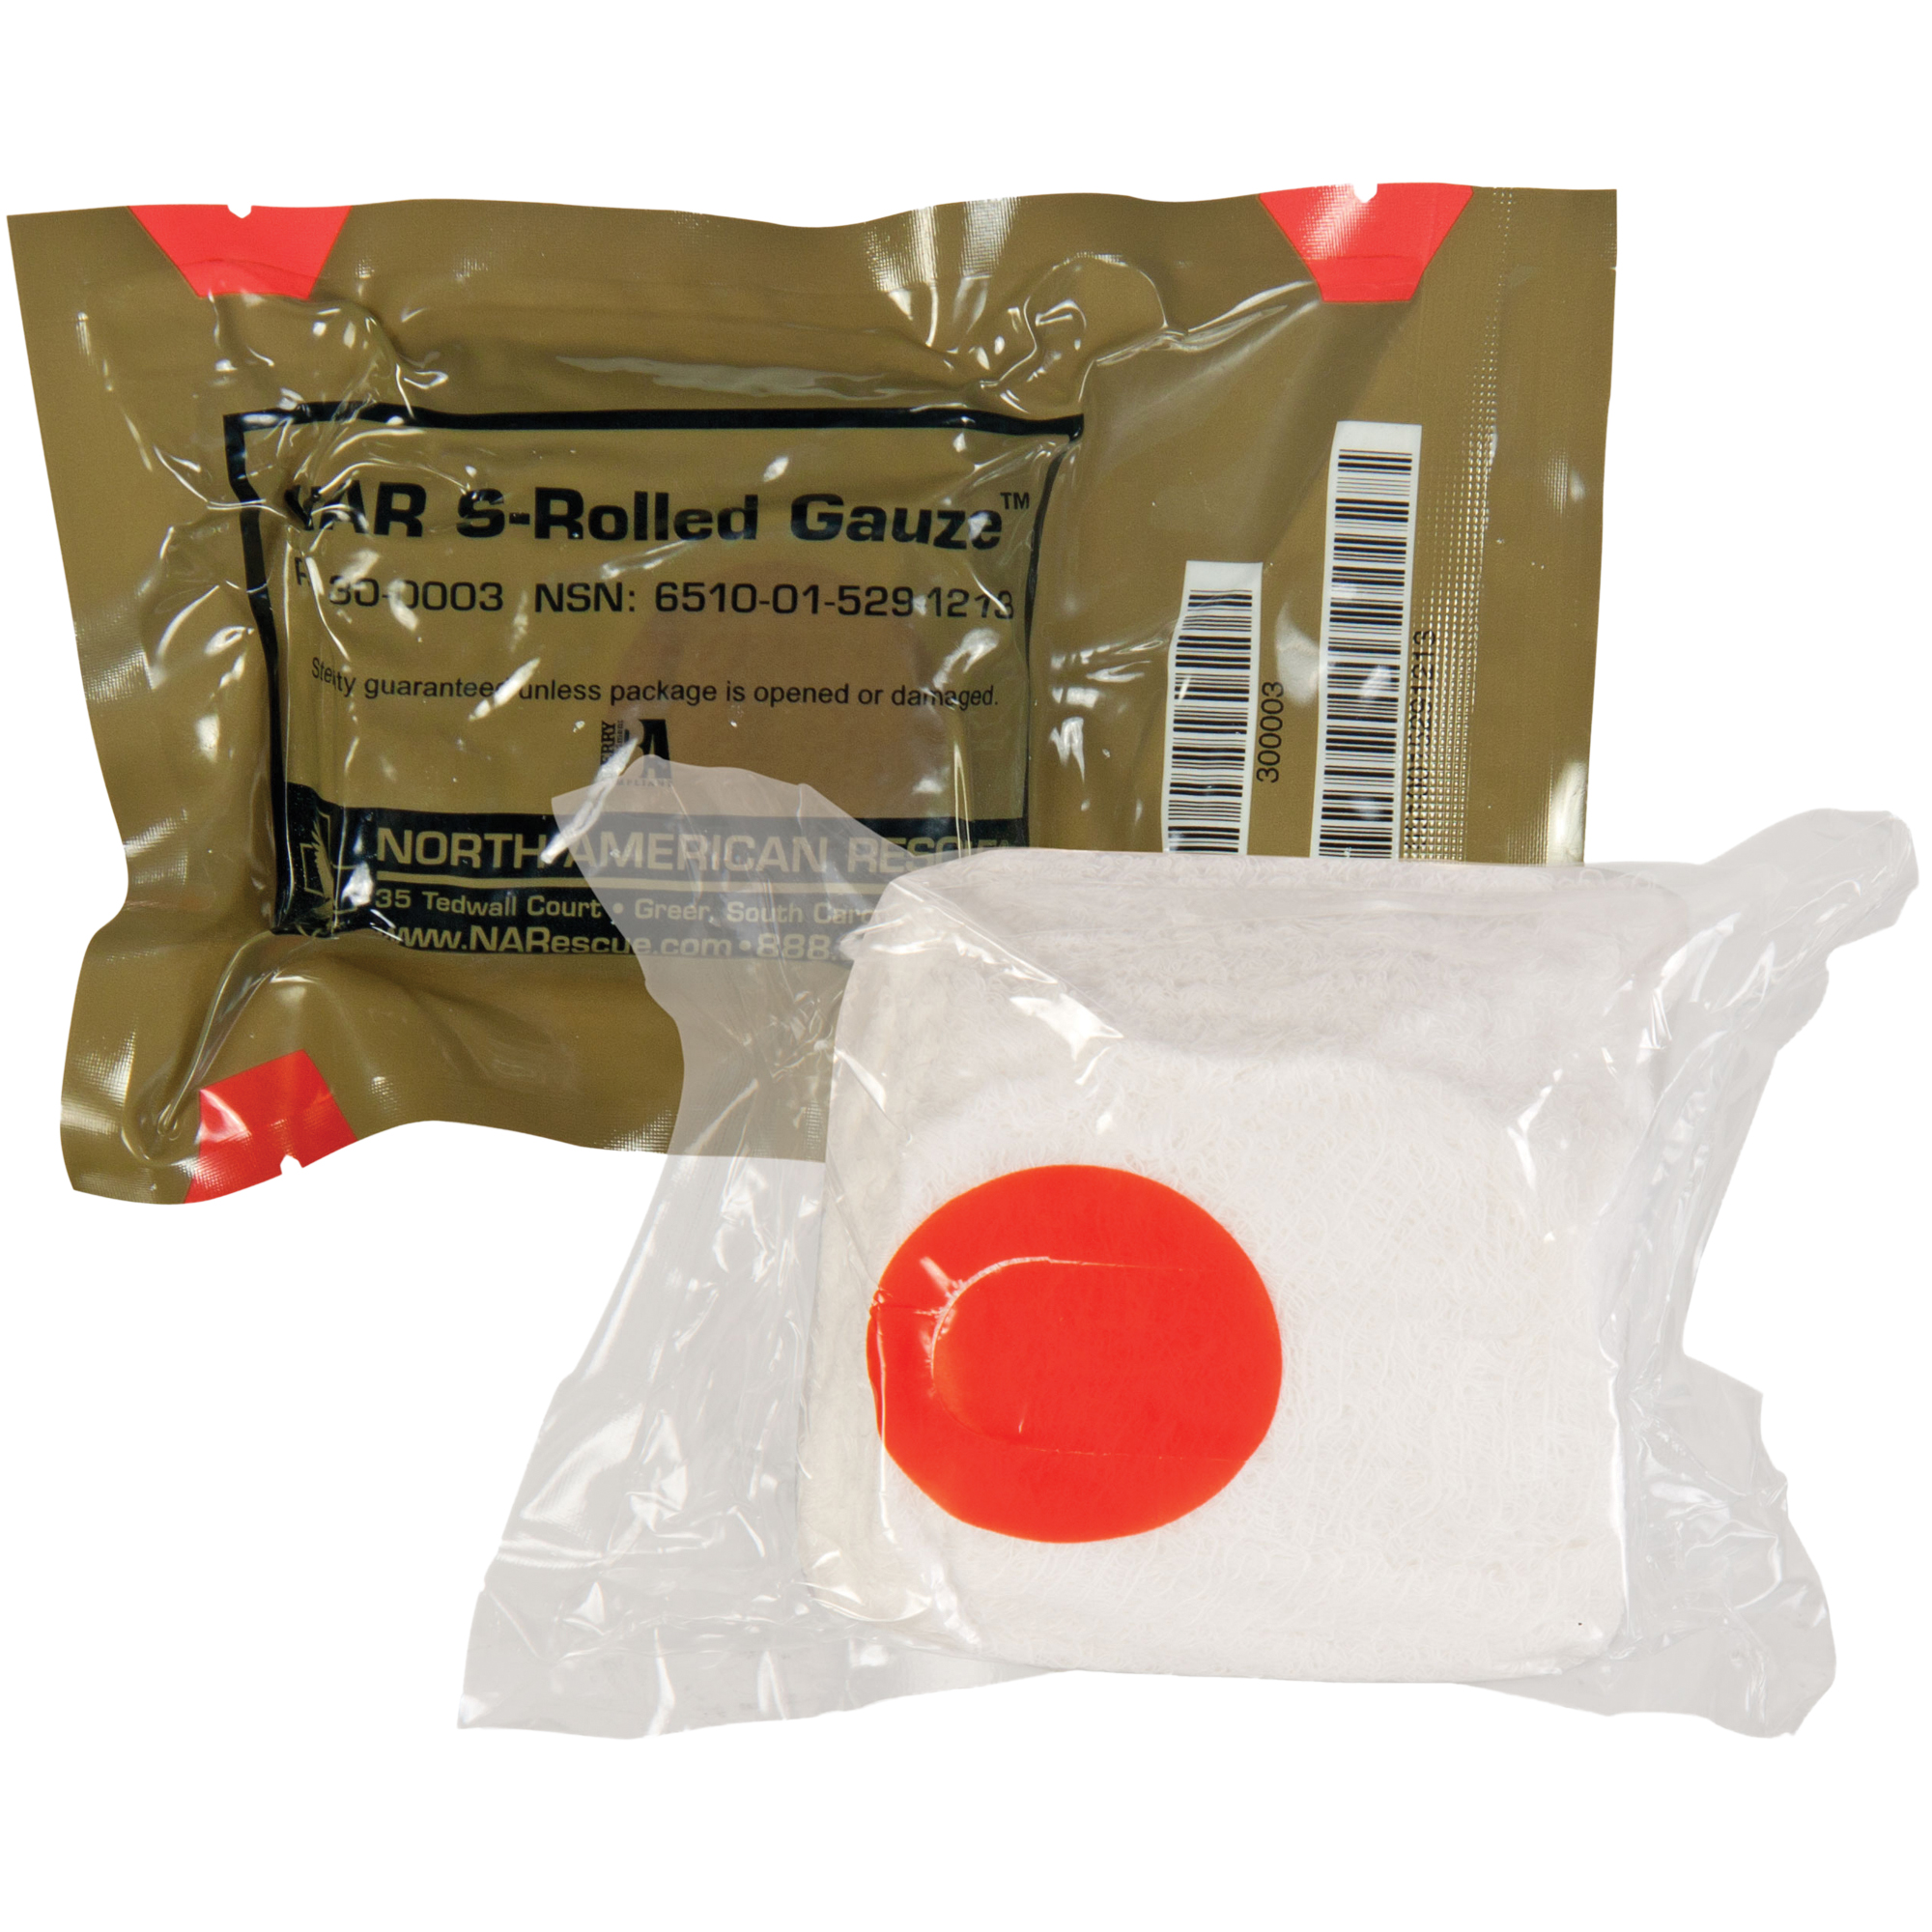 "North American Rescue's S-Rolled Gauze is the ideal solution for a compact"" easy to use"" cotton s-rolled gauze designed for both linear and basic bandaging. Made of premium cotton"" NAR's S-Rolled Gauze can be used to control hemorrhage in conjunction with a compression bandage"" used as backing gauze for hemostatic dressings or for minor wound bandaging. The S-Rolled Gauze is packaged in a unique dispenser that allows for controlled application and protects unused portions from contamination during application. Its low cube space requirement and rugged"" durable vacuum sealed packaging make it easy to fit in both individual first aid kits and medic kits."